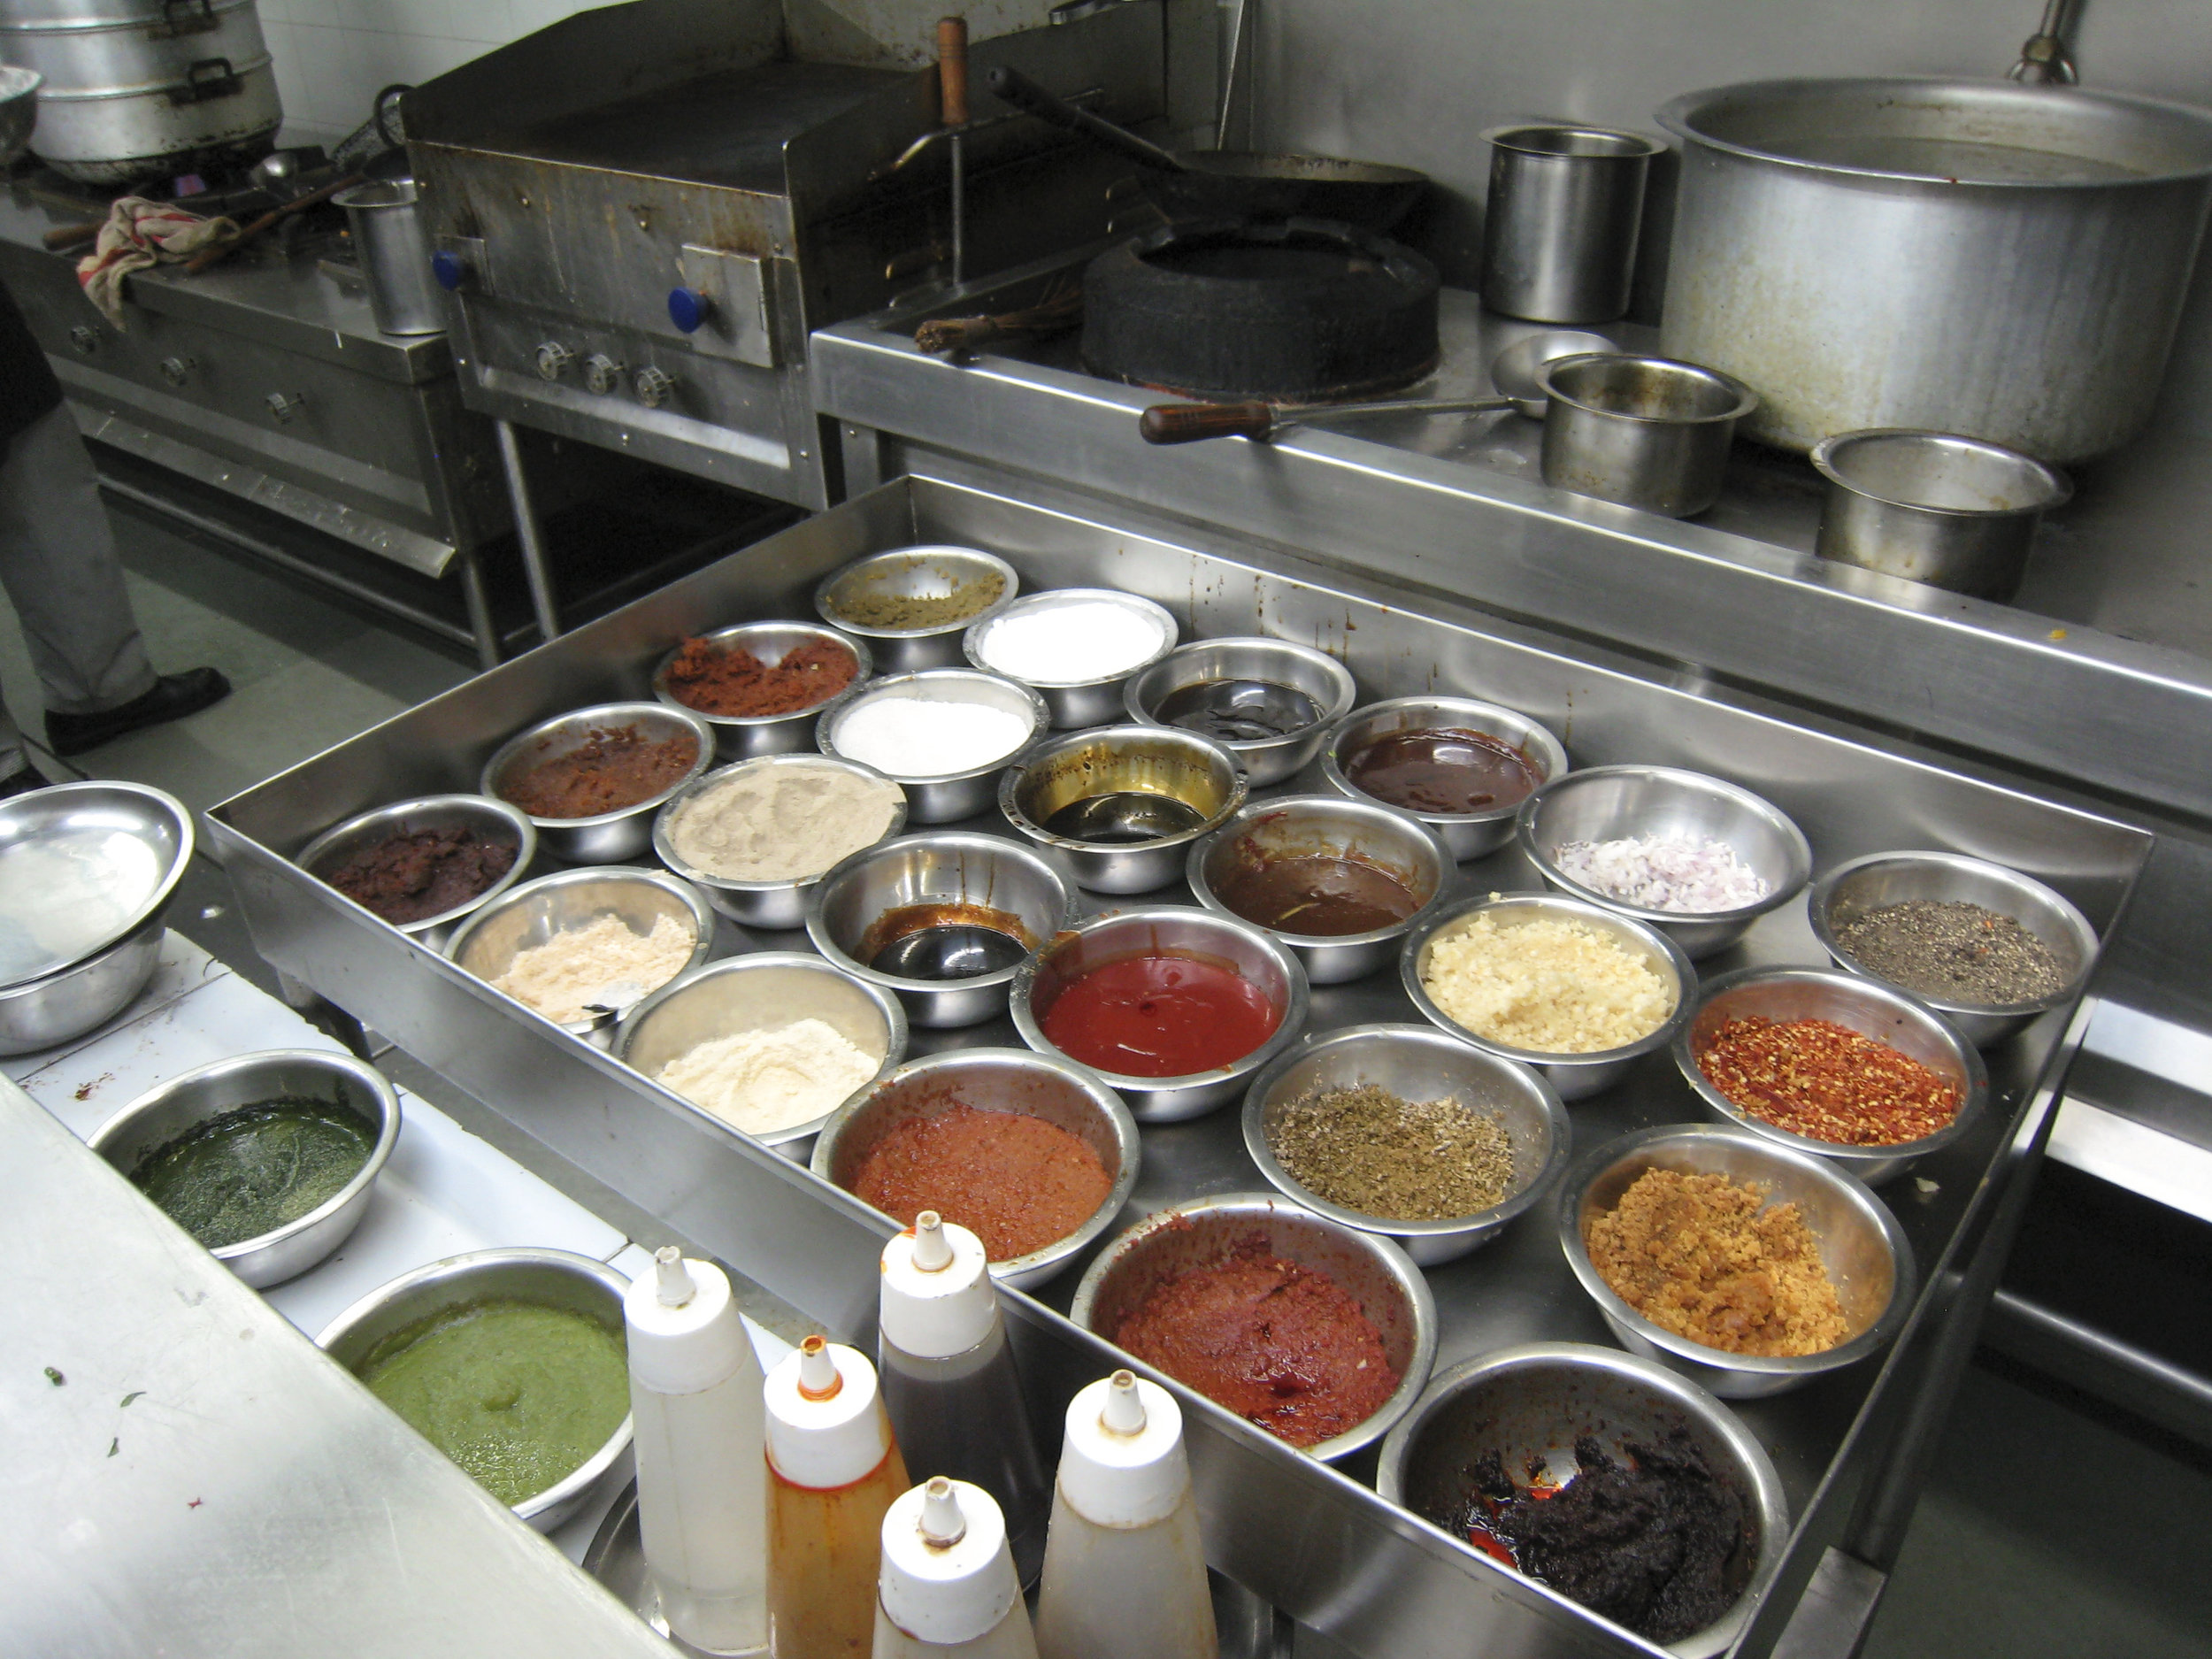 mise en place philosophy demonstrated with a careful segregation of ingredients into separate bowls -